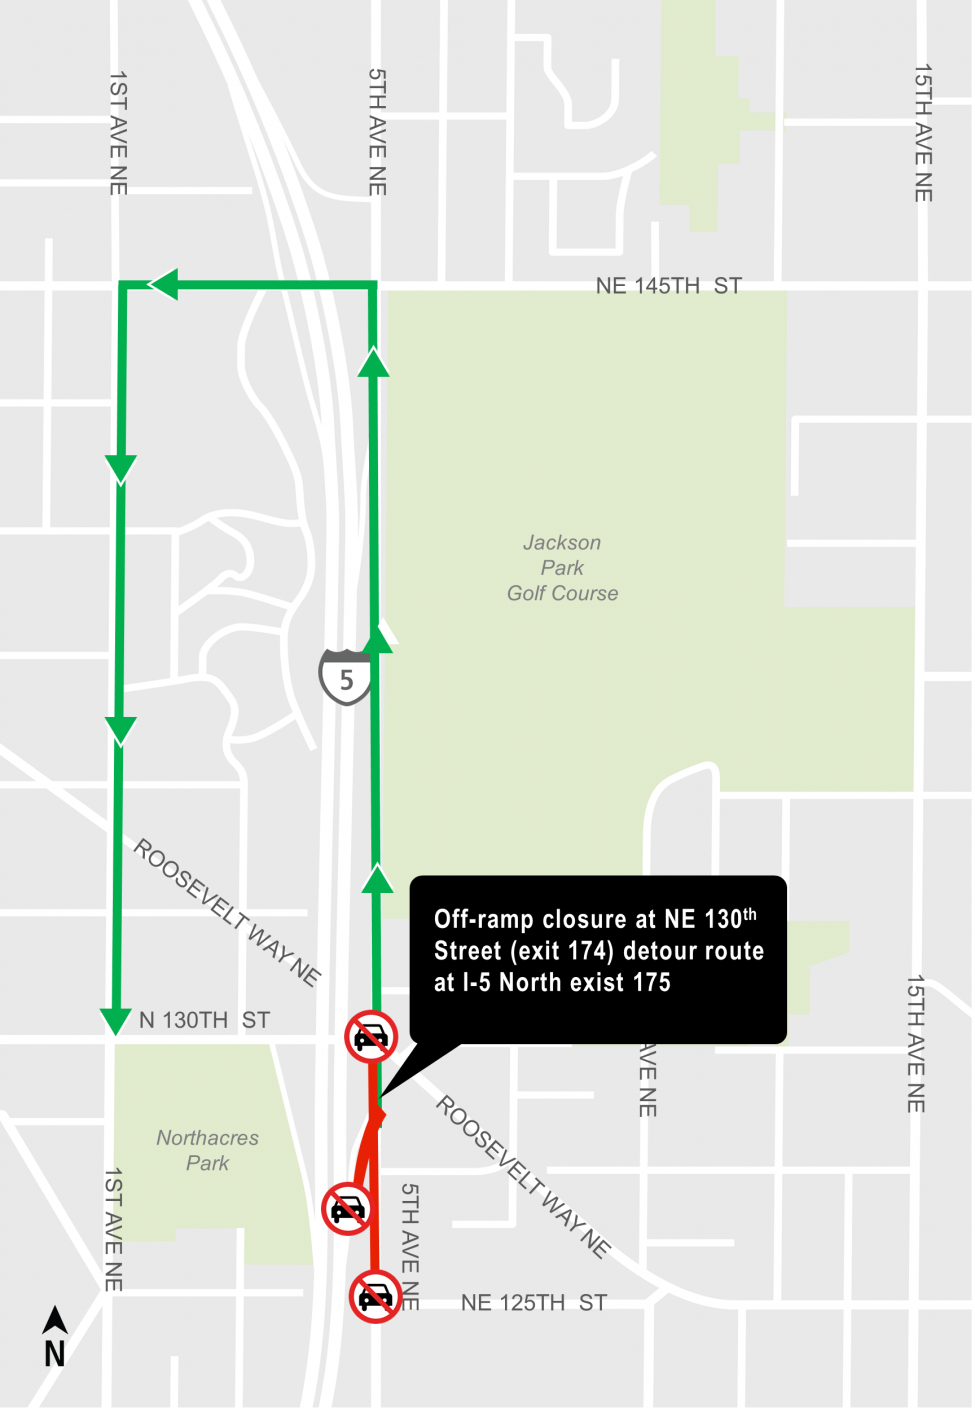 Map of Interstate 5 exit 174 at Northeast 130th Street closure and detour route.